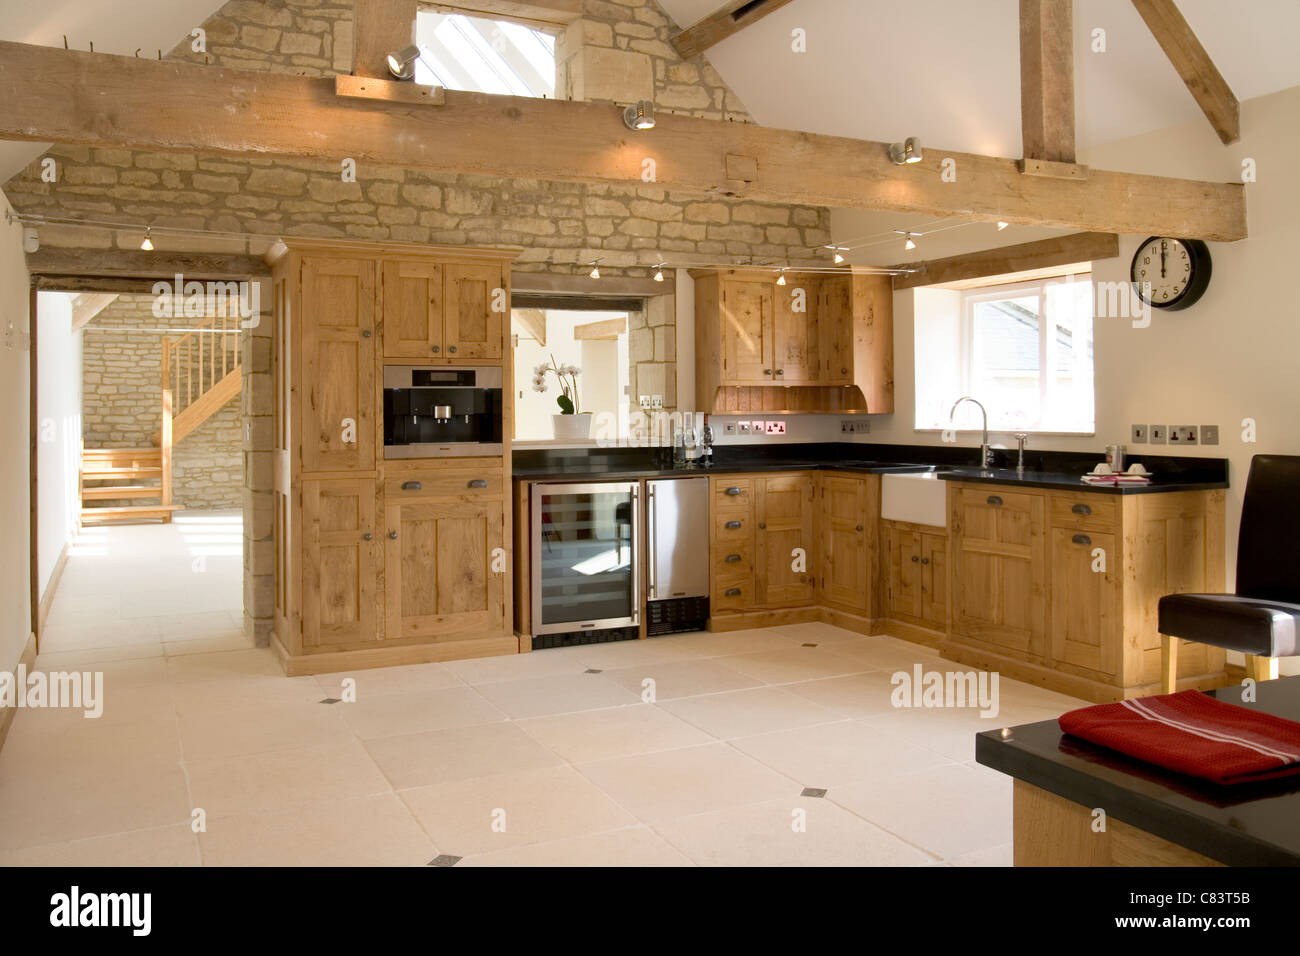 High Quality Brand New Contemporary Upmarket Large Barn Conversion Fitted Kitchen    Stock Image Part 28